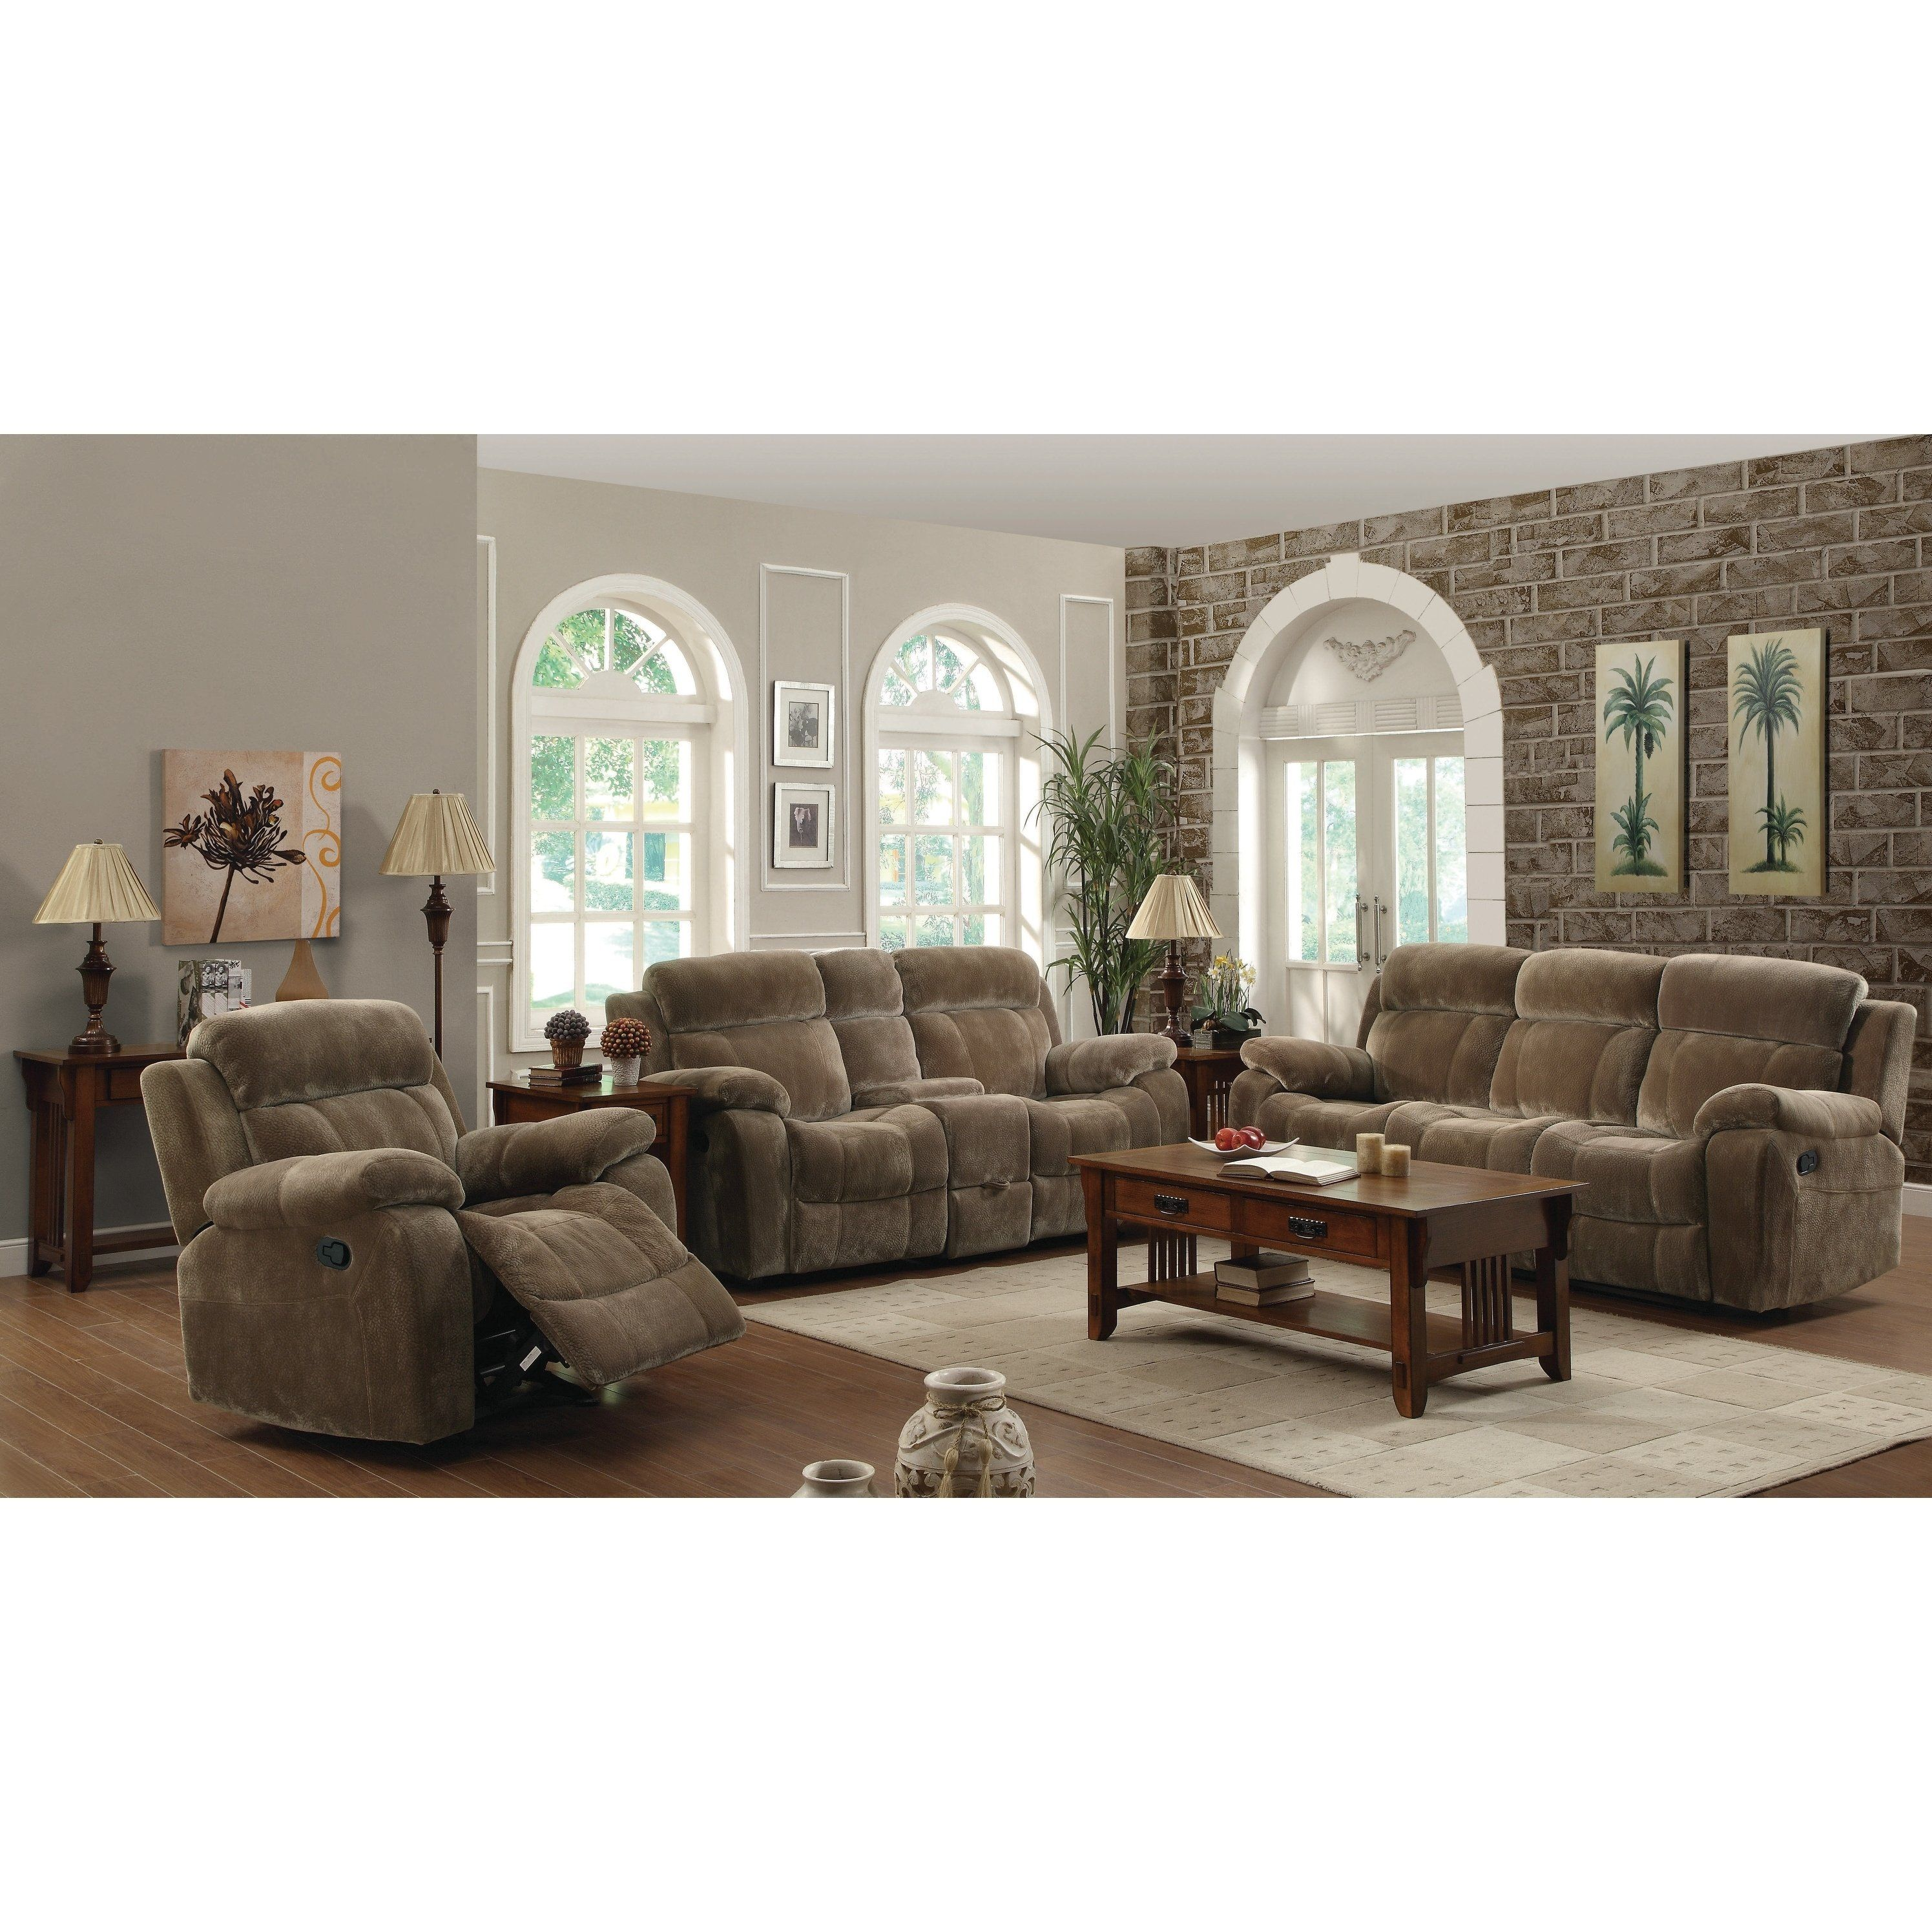 10+ Most Popular Reclining 3 Piece Living Room Set